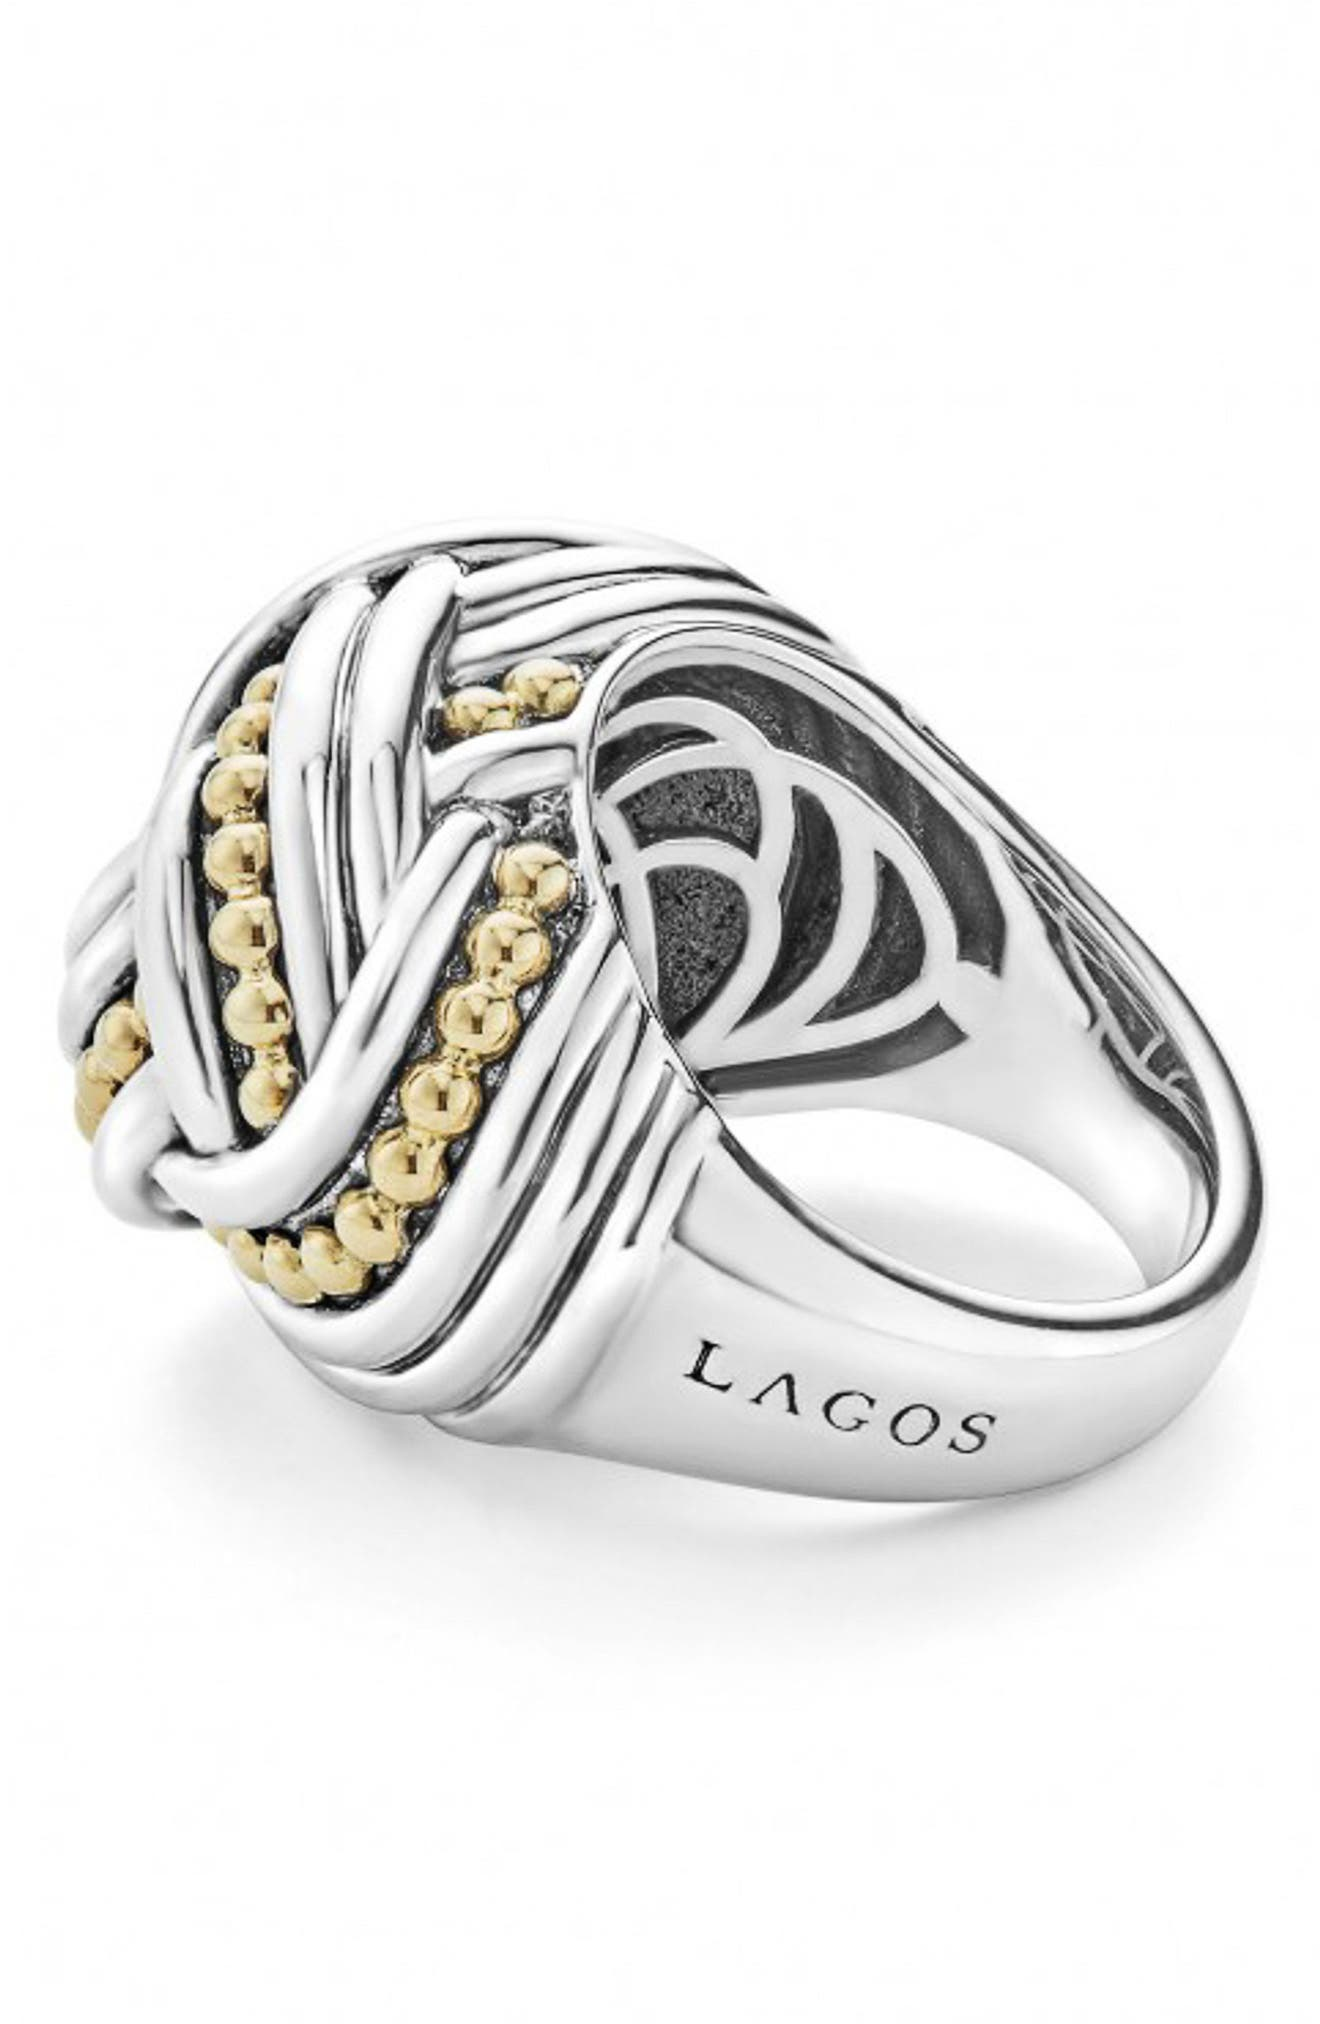 Torsade Large Rounded Rectangle Ring,                             Alternate thumbnail 3, color,                             Silver/ Gold